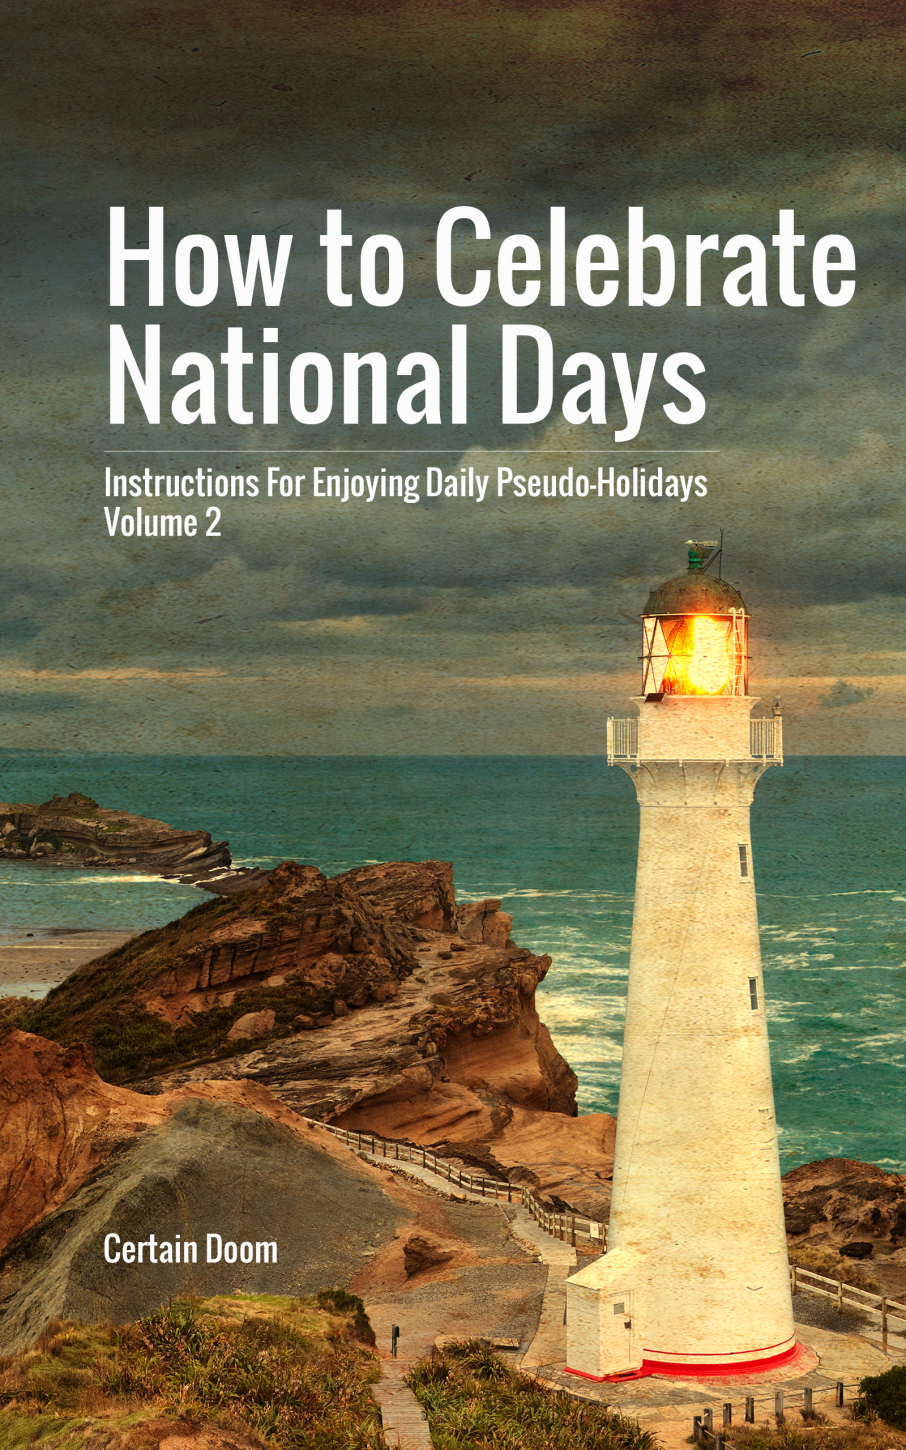 How to Celebrate National Days: Volume 2 - My second book follows the general format and absurdity of the first, but with an added, intermittent narrative element and a much better book cover. It's also available in Kindle and paperback formats.